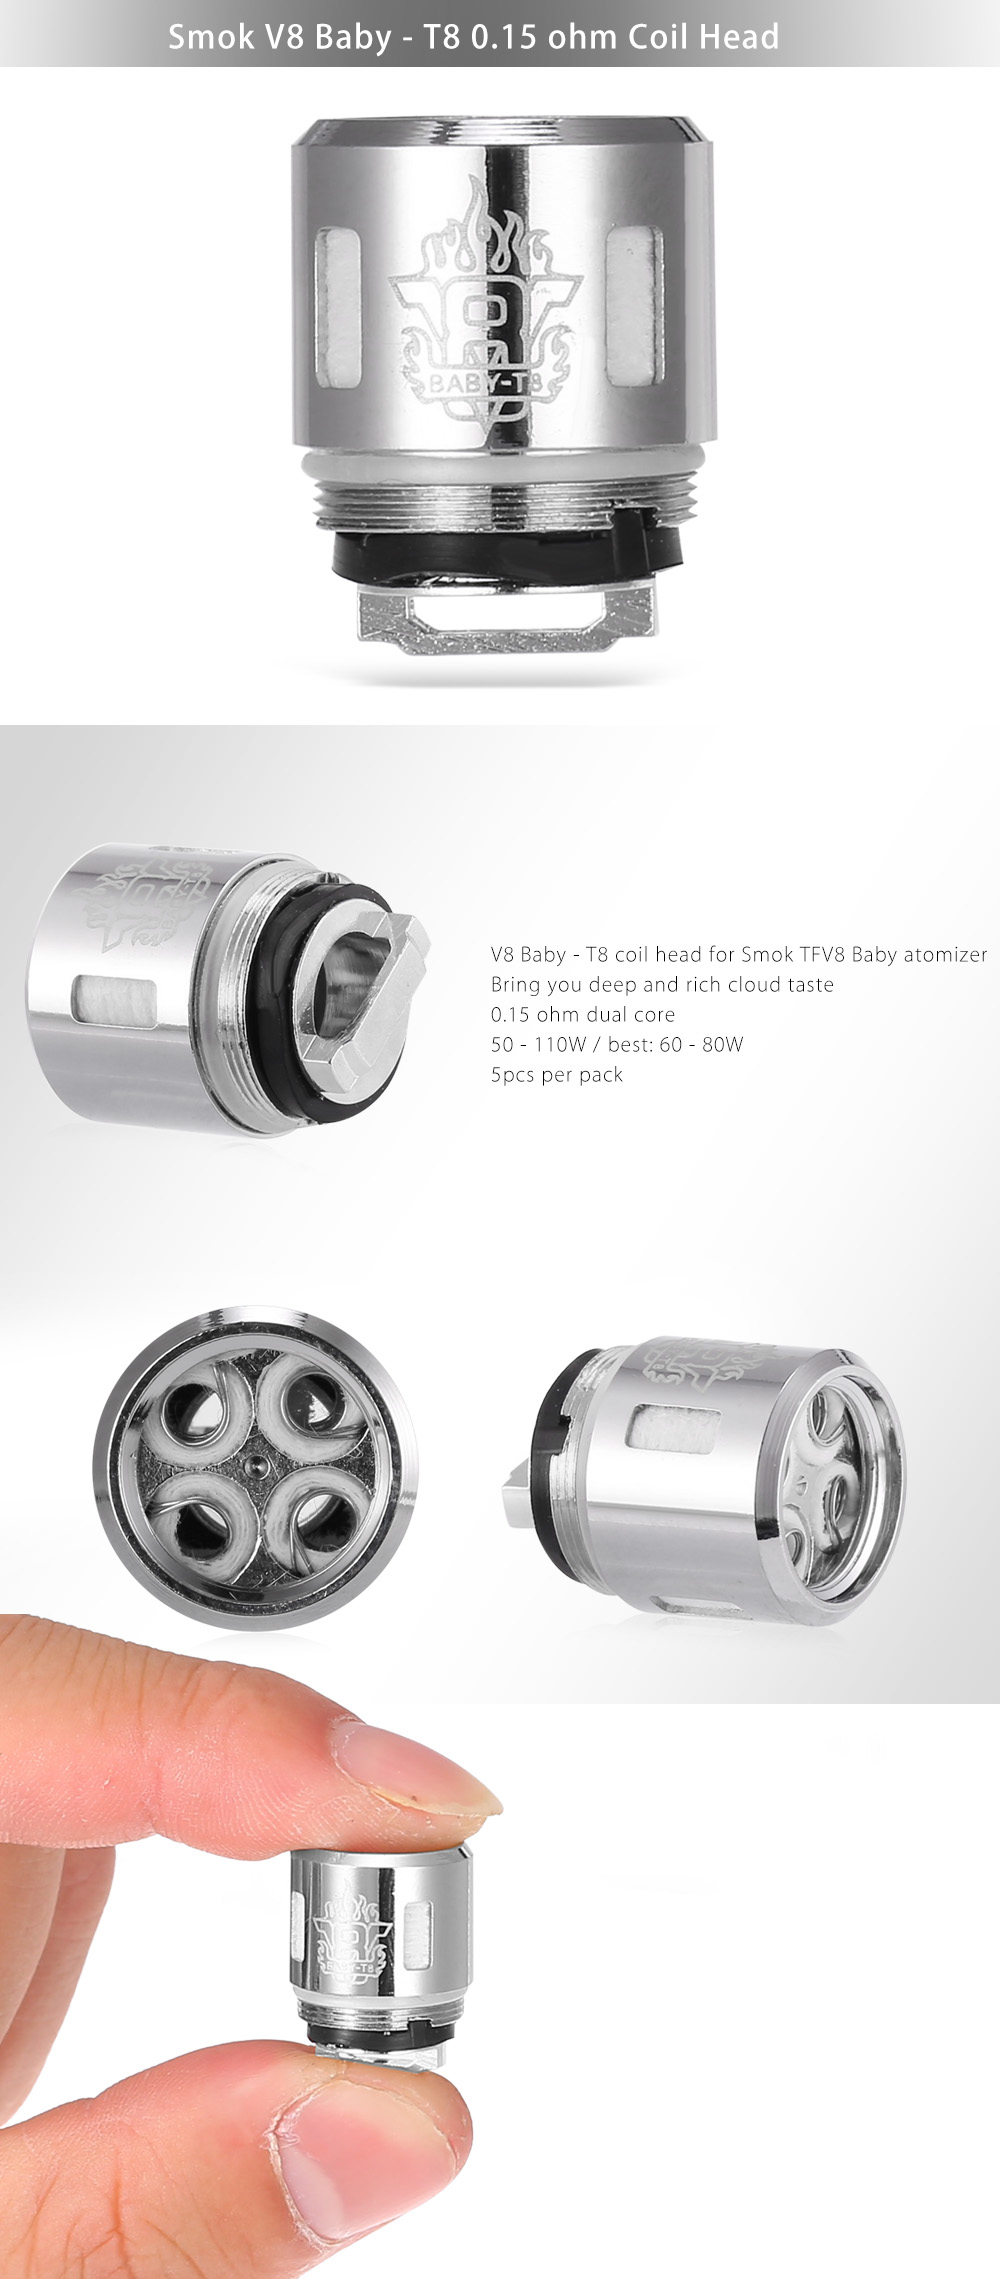 Smok V8 Baby - T8 0.15 ohm Coil Head for TFV8 Baby Atomizer for E Cigarette(5pcs / Pack)